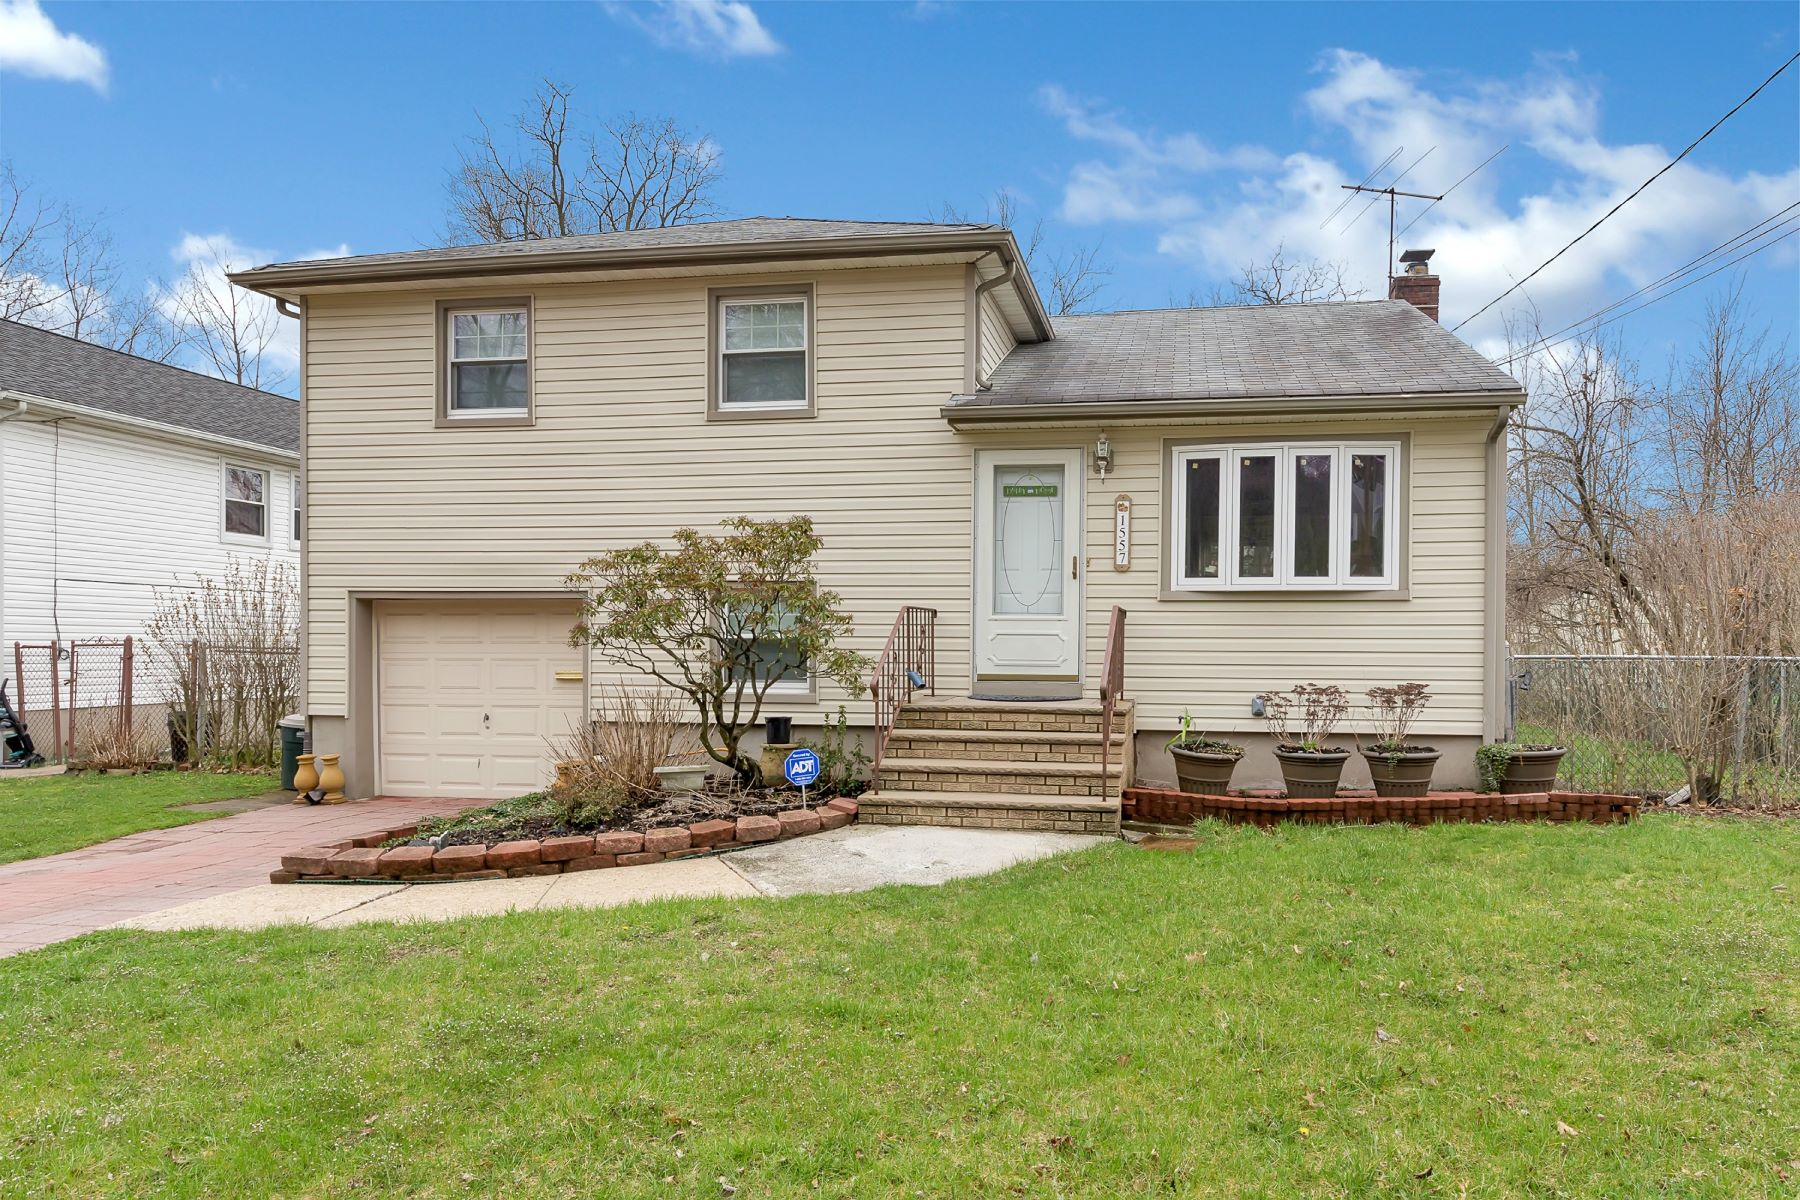 Single Family Home for Sale at Picture Perfect Home 1557 Everett Circle Union, New Jersey 07083 United States